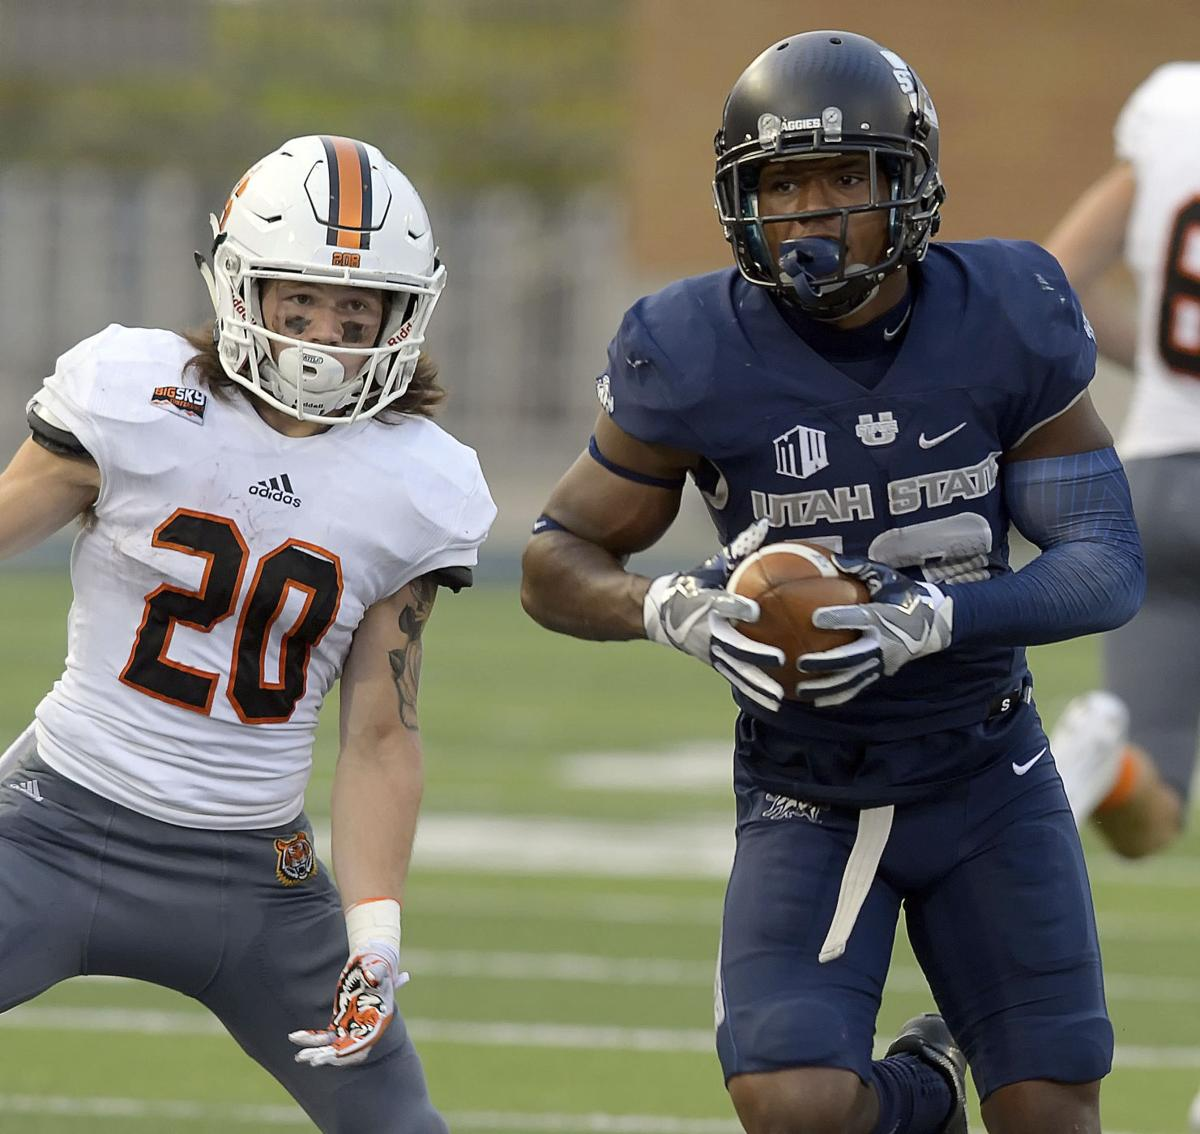 2a750d85 Utah State's Jalen Davis goes from unappreciated to All-American | Tucson  Sports | tucson.com